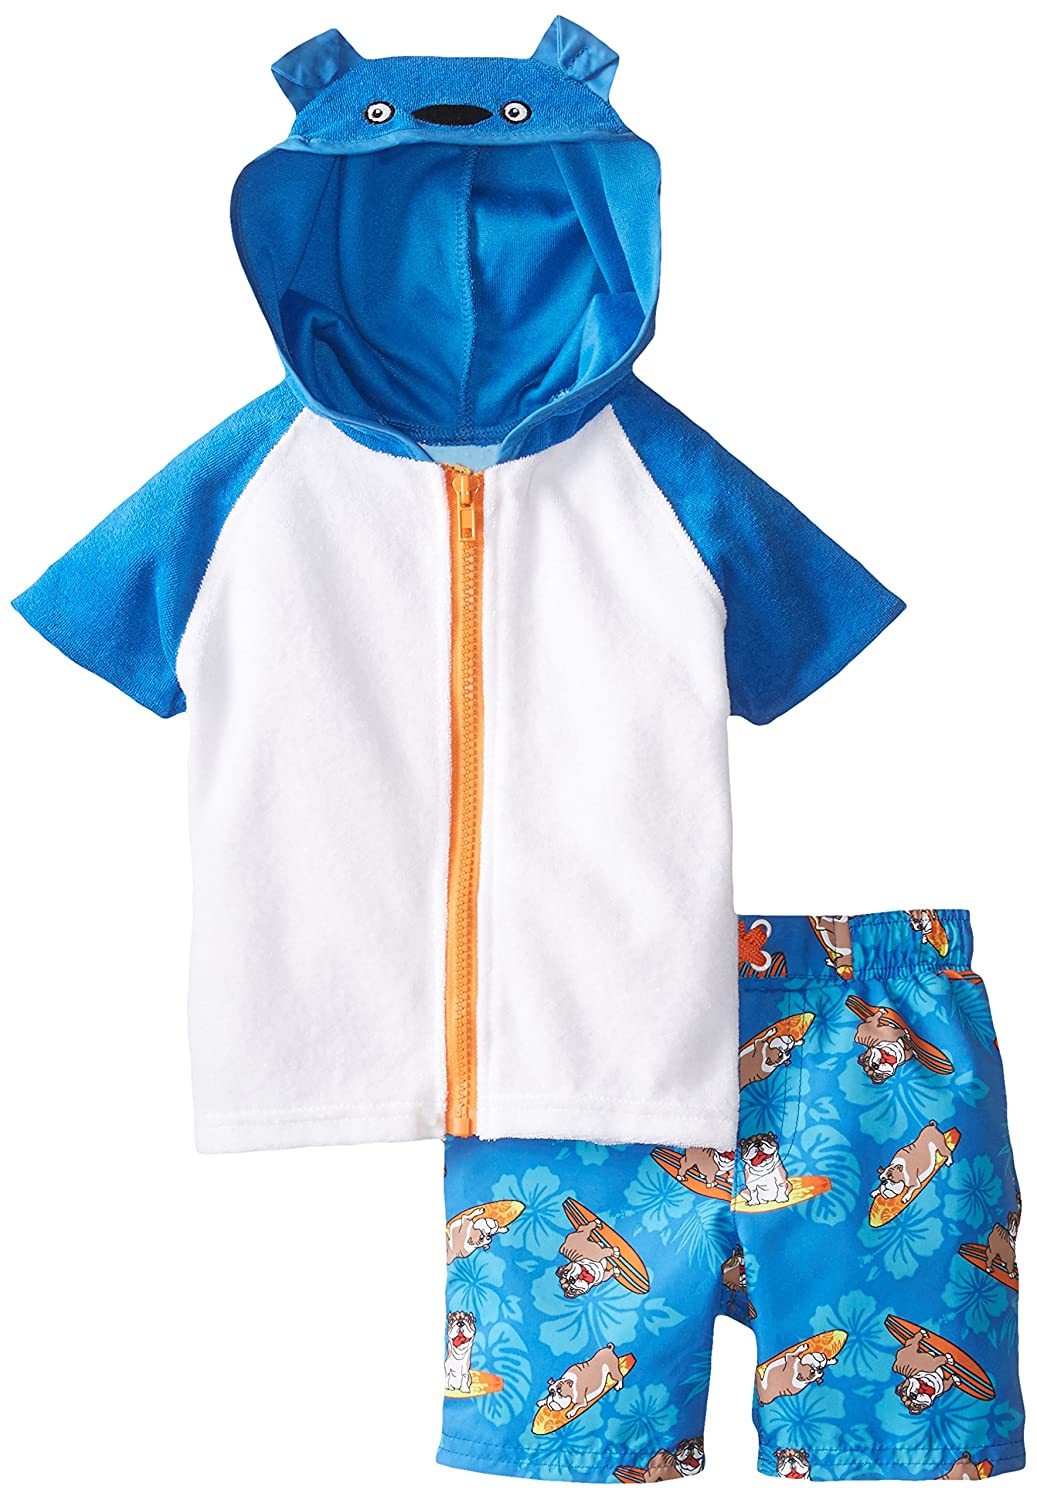 Baby Buns Baby-Boys Infant Surfs Ruff Cover Up Set Baby Buns Swimwear W13688